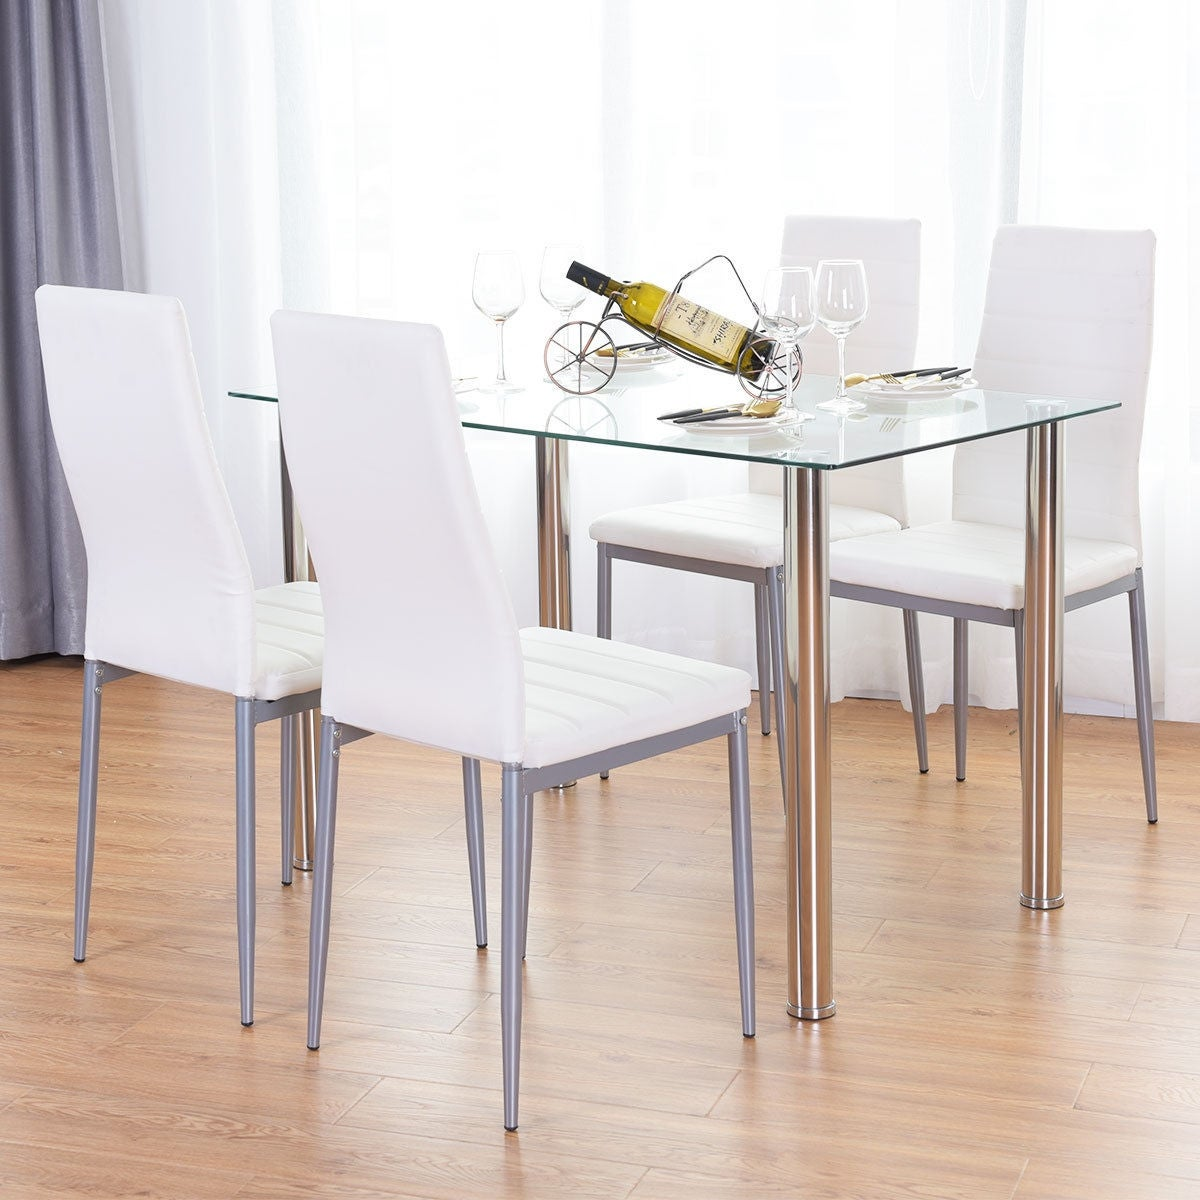 Shop Costway 5 Piece Dining Set Table and 4 Chairs Glass Metal ...